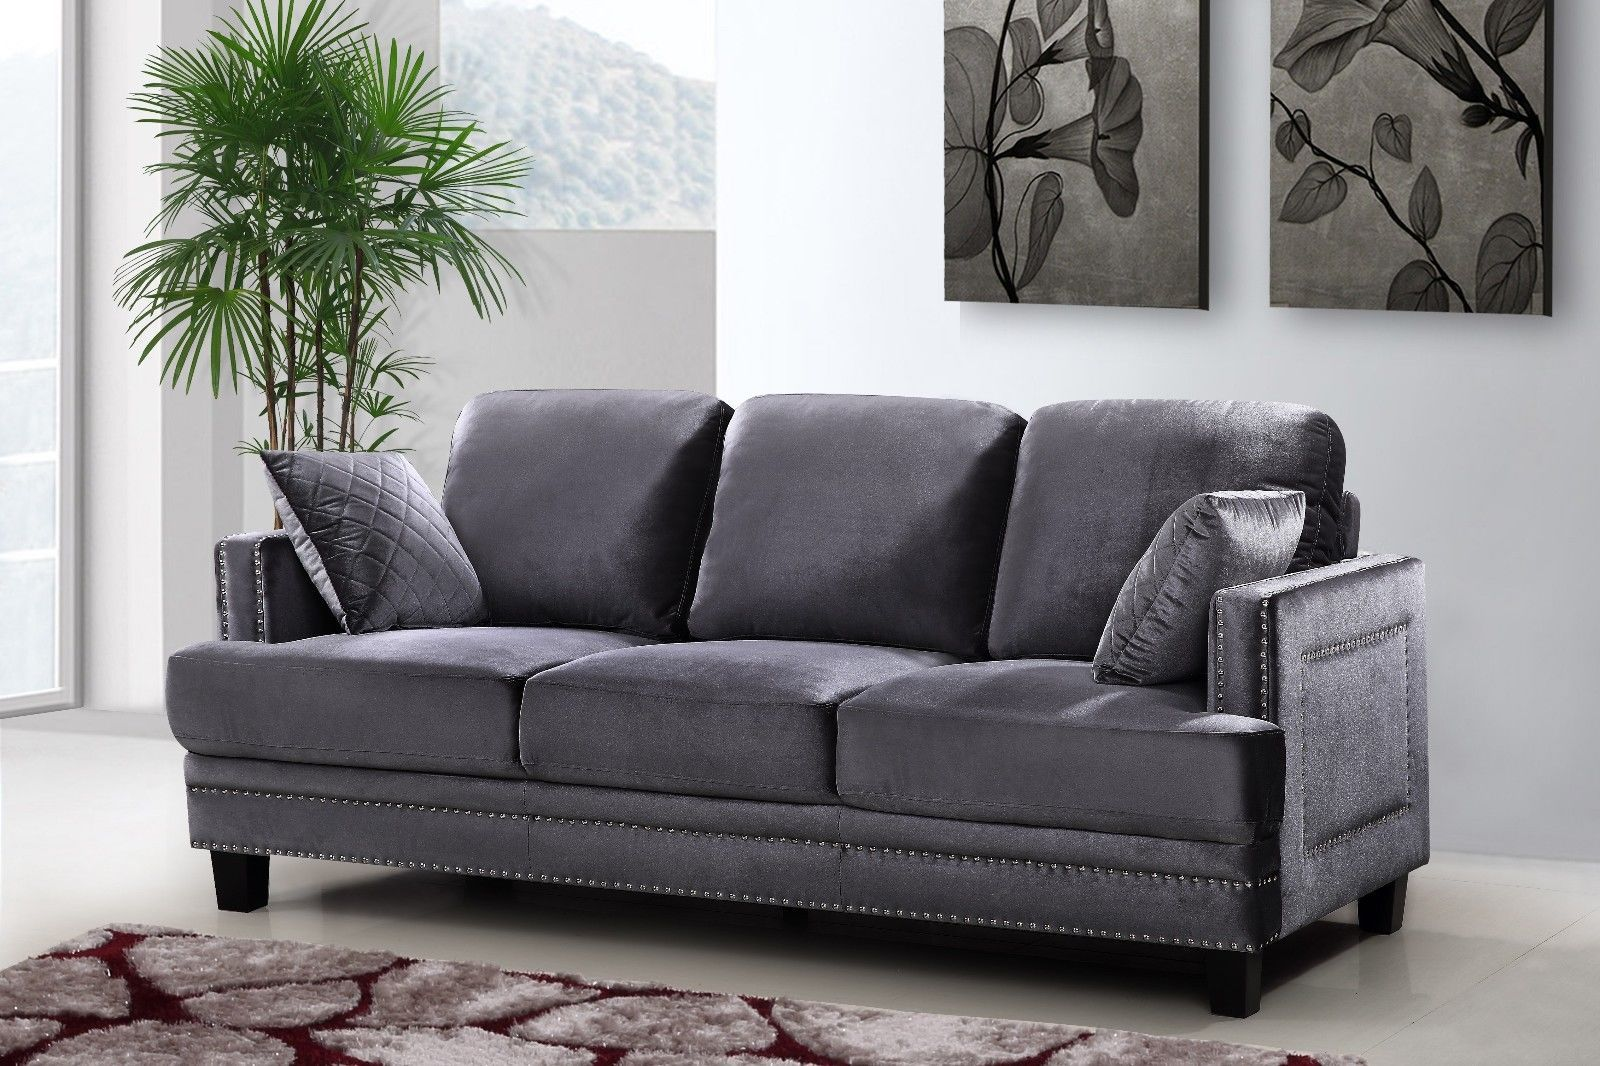 Meridian 655 Grey Velvet Leather Living Room Sofa Set 2pc. Contemporary Style